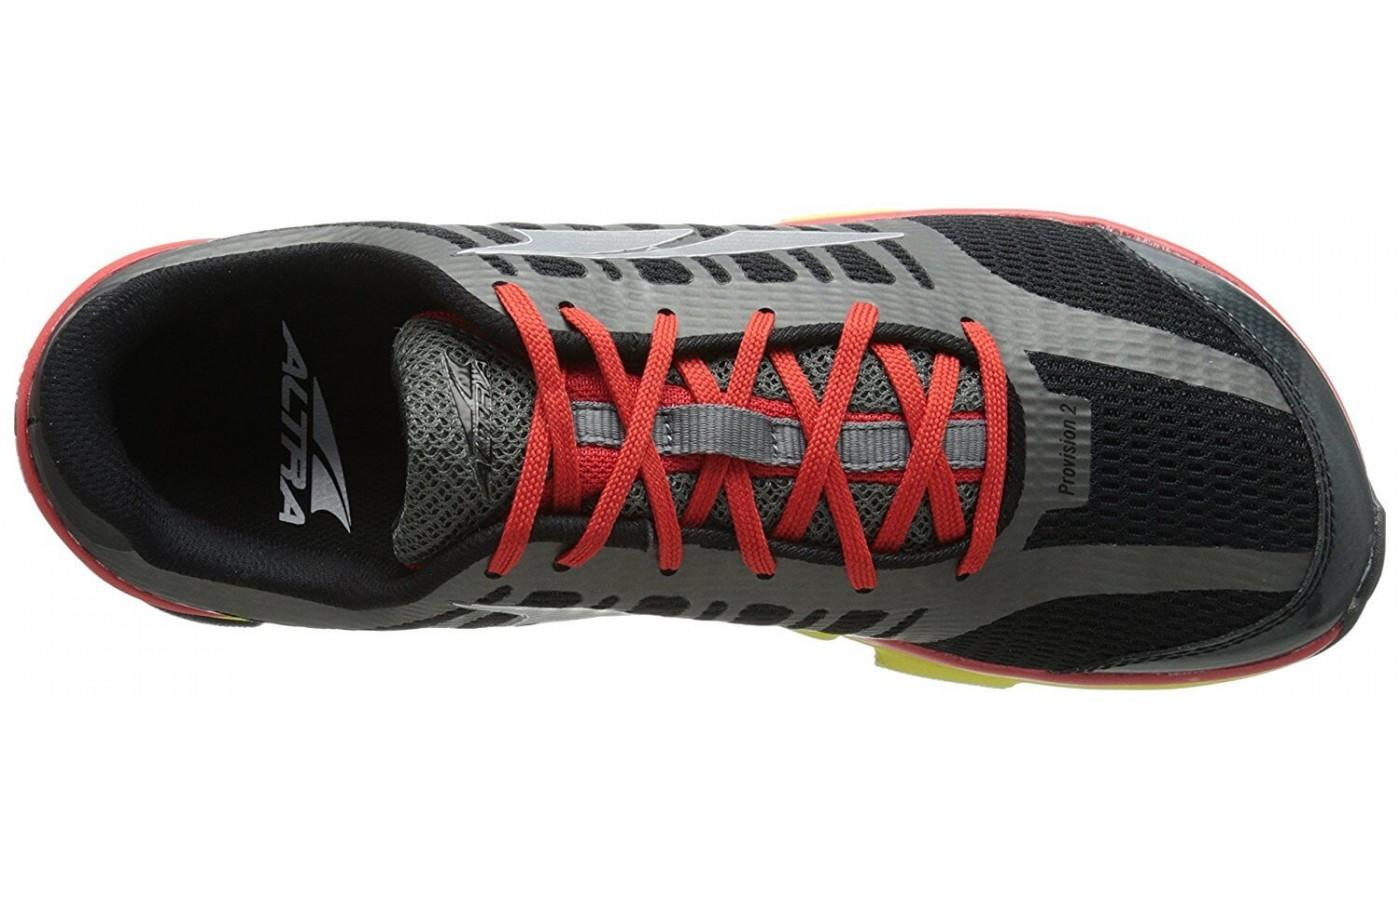 the top of the Altra Provision 2 shoe